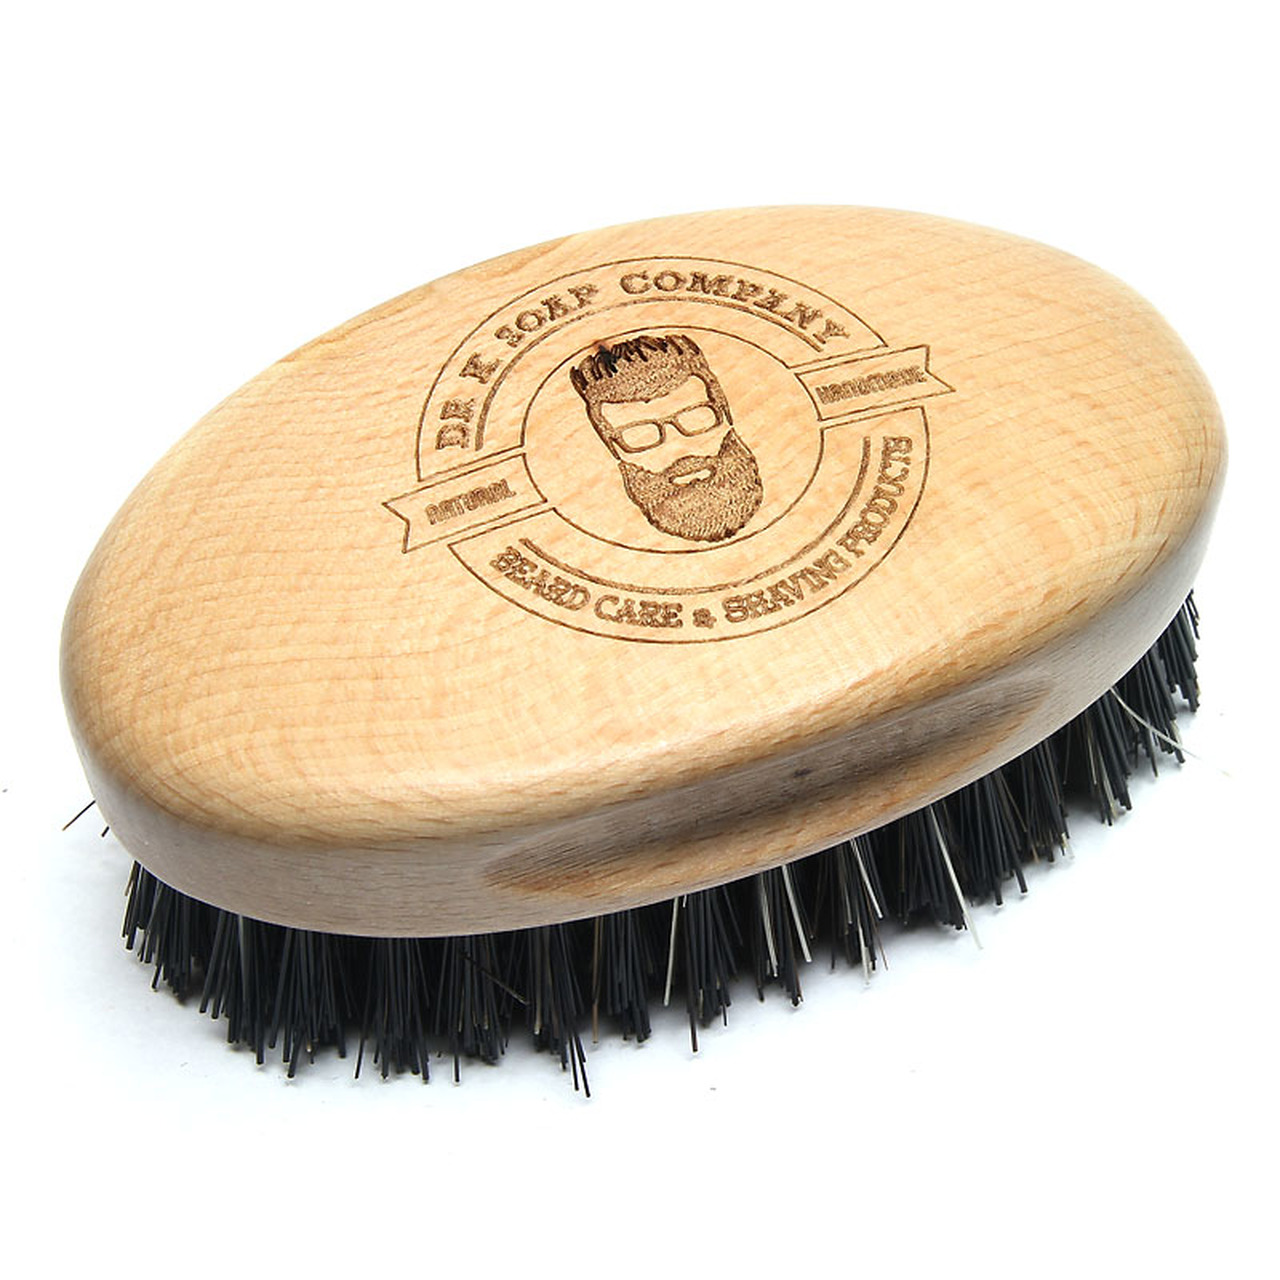 Dr K Soap Beard Brush - duży kartacz do brody